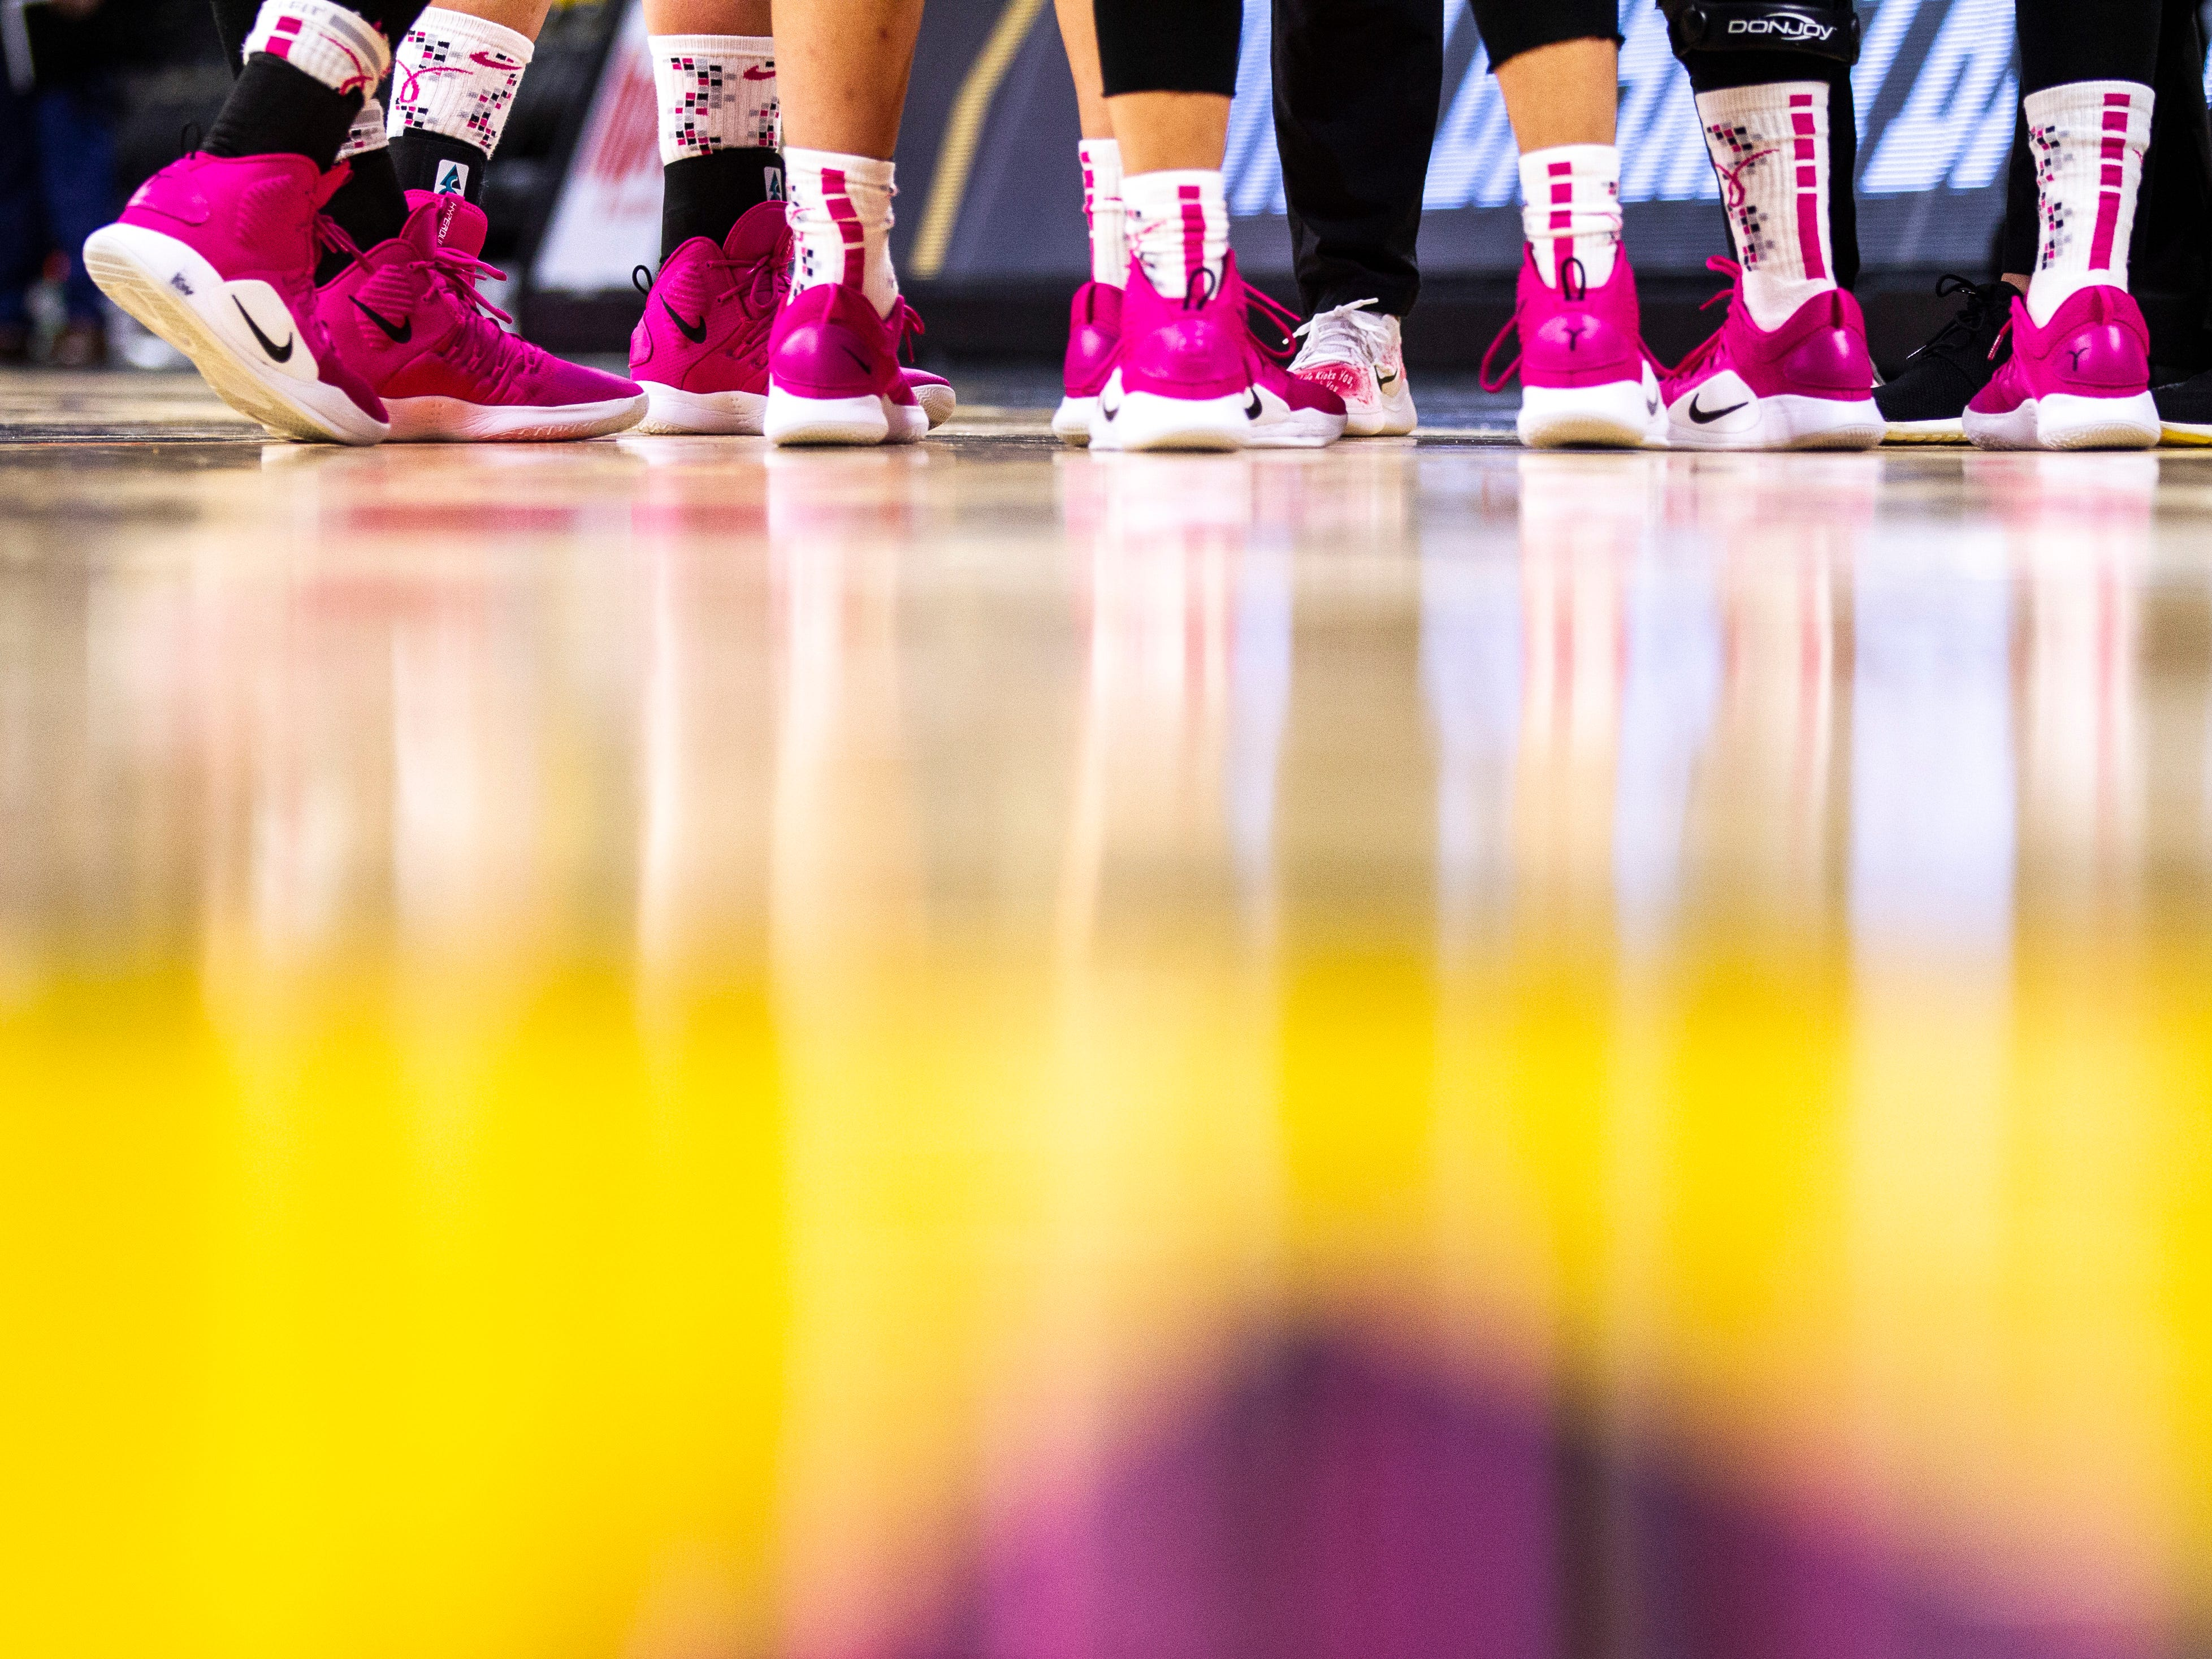 Iowa Hawkeyes wear pink Nike shoes during a NCAA Big Ten Conference women's basketball game on Sunday, Feb. 17, 2019 at Carver-Hawkeye Arena in Iowa City, Iowa.